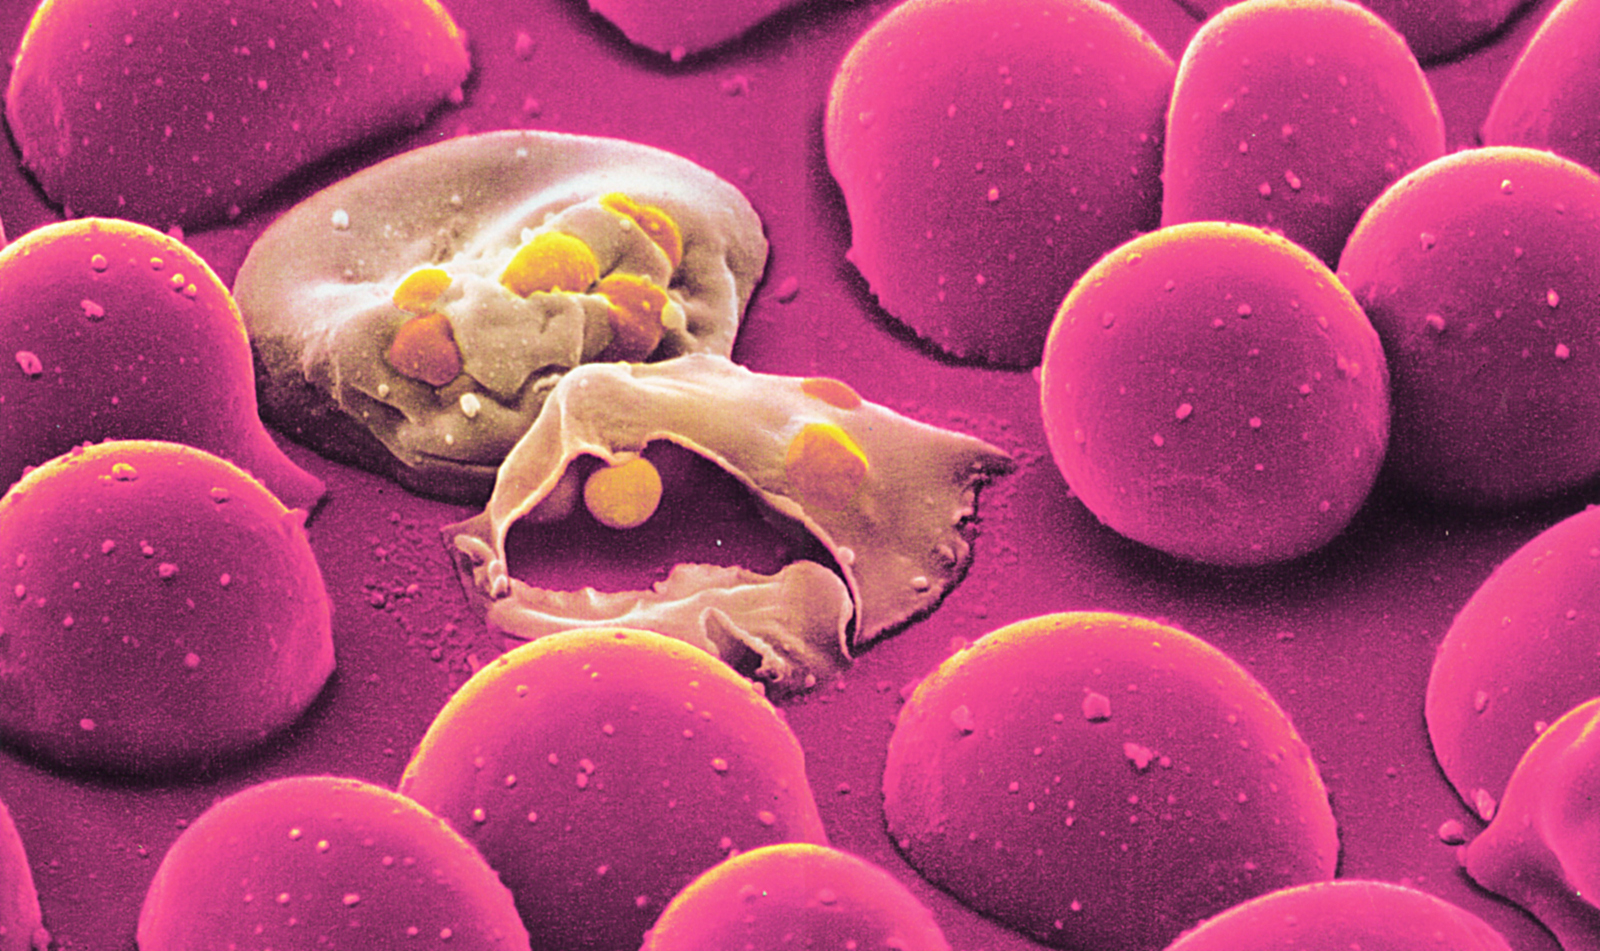 malaria is an infectious disease biology essay Plasmodium falciparum is a protozoan parasite that causes an infectious disease known as malaria p falciparum is the most severe strain of the malaria species.